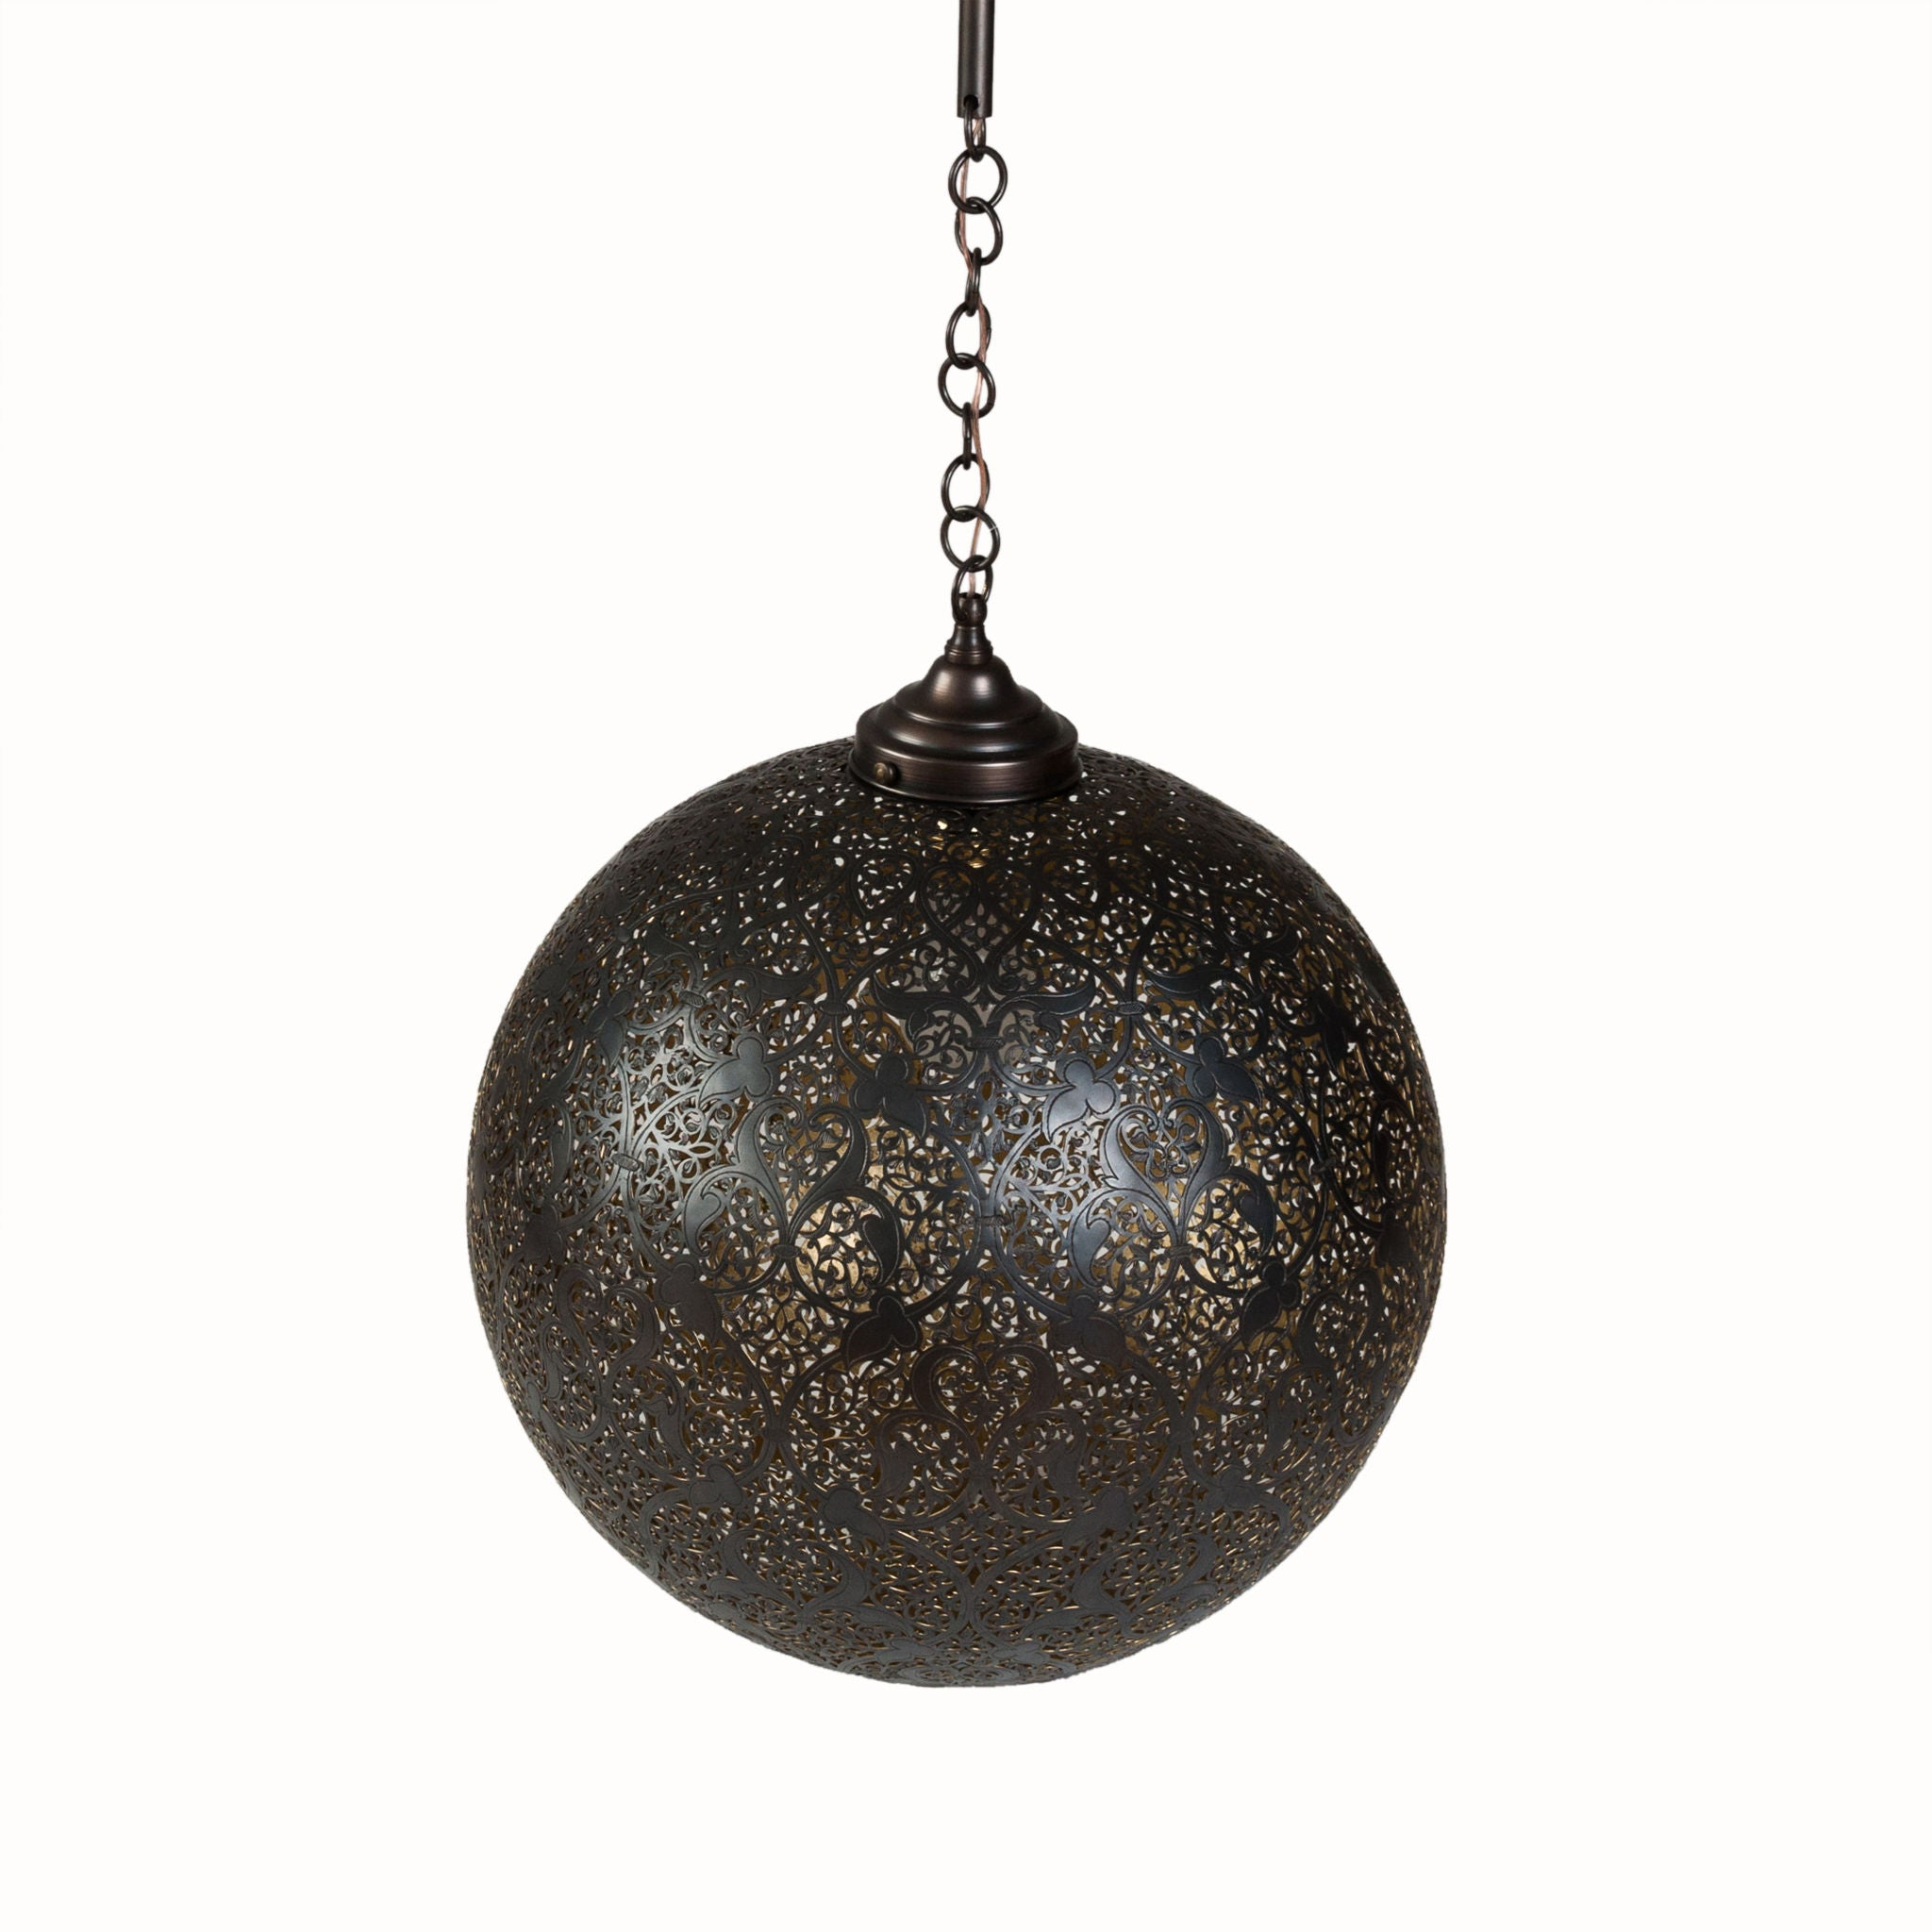 Black Moroccan handmade brass hanging lamp